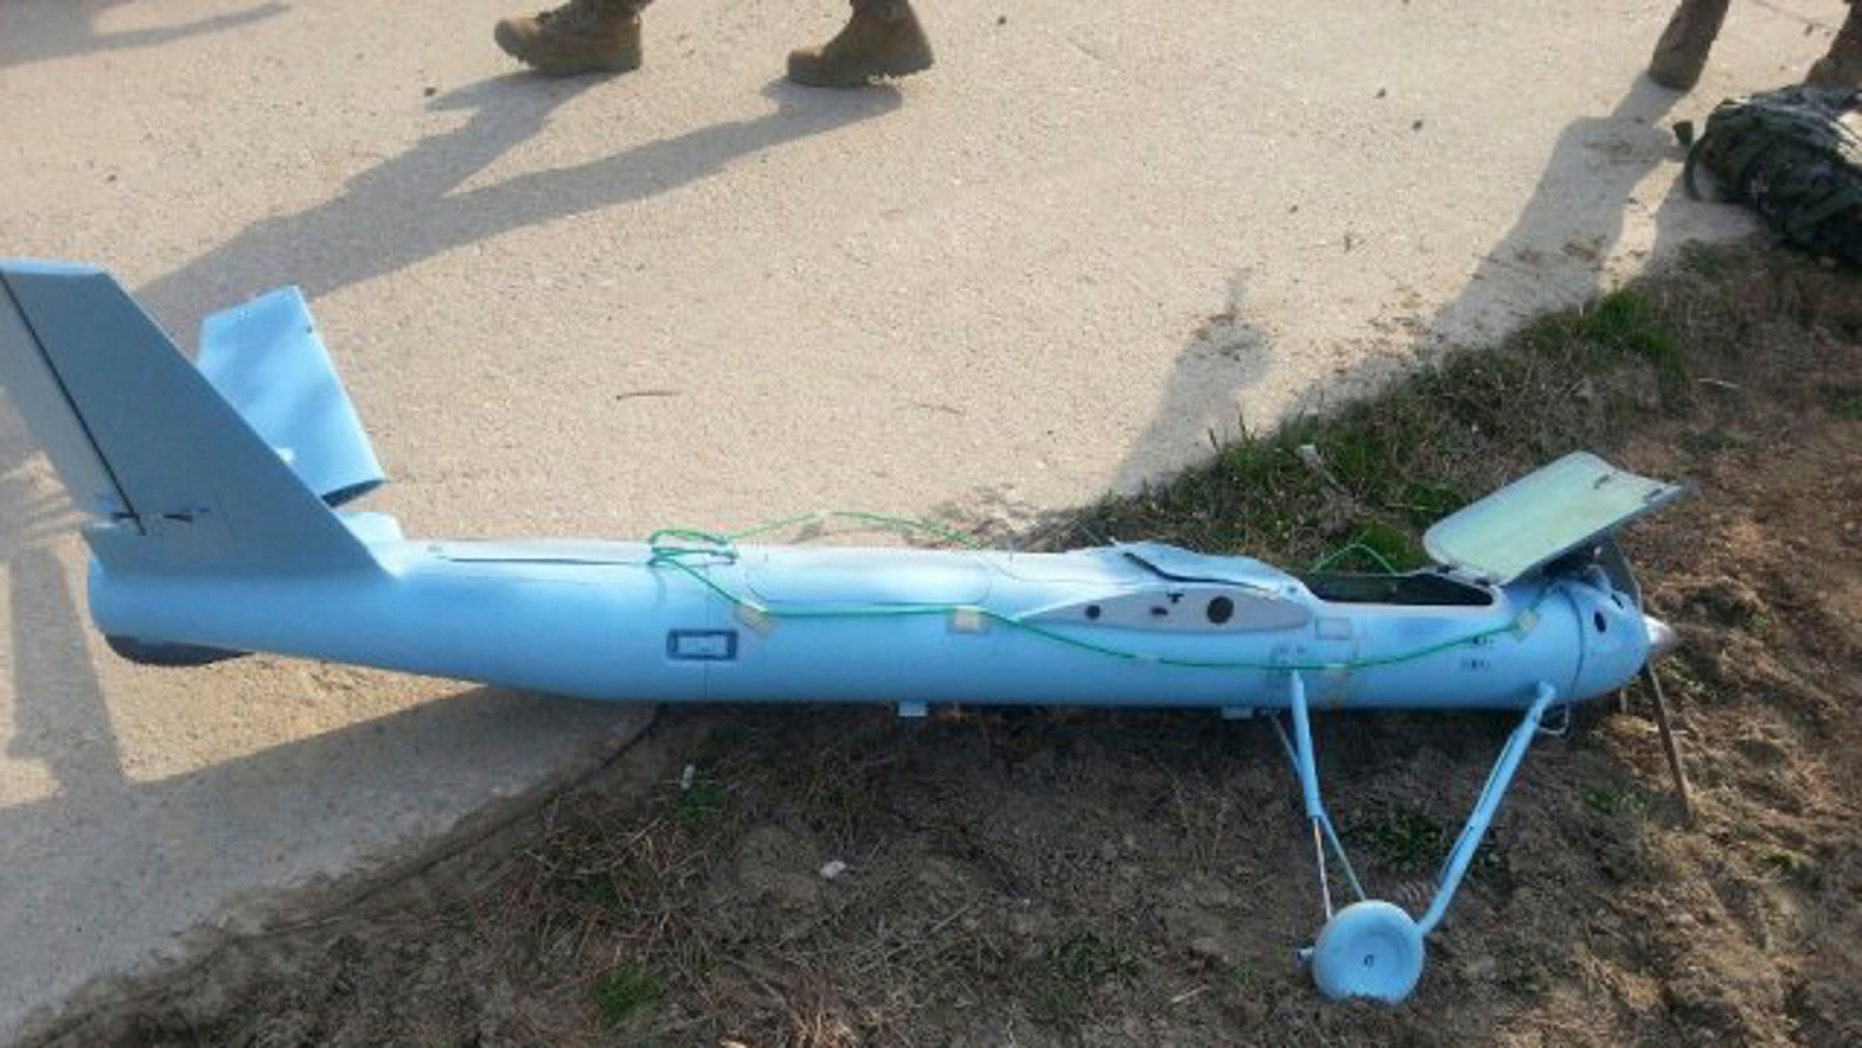 March 31, 2014: In this photo released by the South Korea Defense Ministry, an unmanned drone lies on the ground damaged on Baengnyeong Island, South Korea, near the West Sea border with North Korea when the two Koreas fired hundreds of artillery shells into each other's waters. South Korea suspects that the drone that crashed on the frontline South Korean island was flown by rival North Korea, an official said Wednesday. (AP Photo/South Korea Defense Ministry)